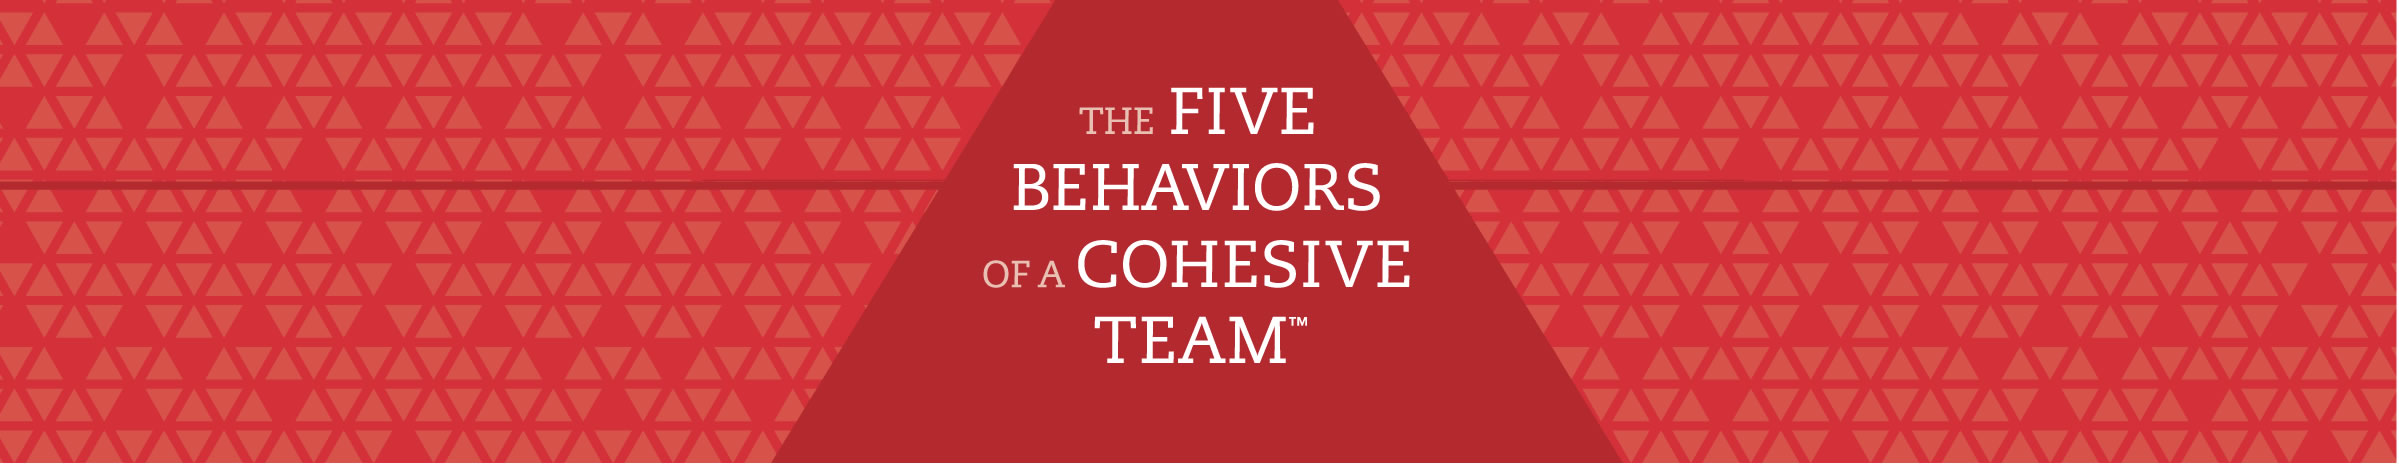 Five Behaviors of a Cohesive Team